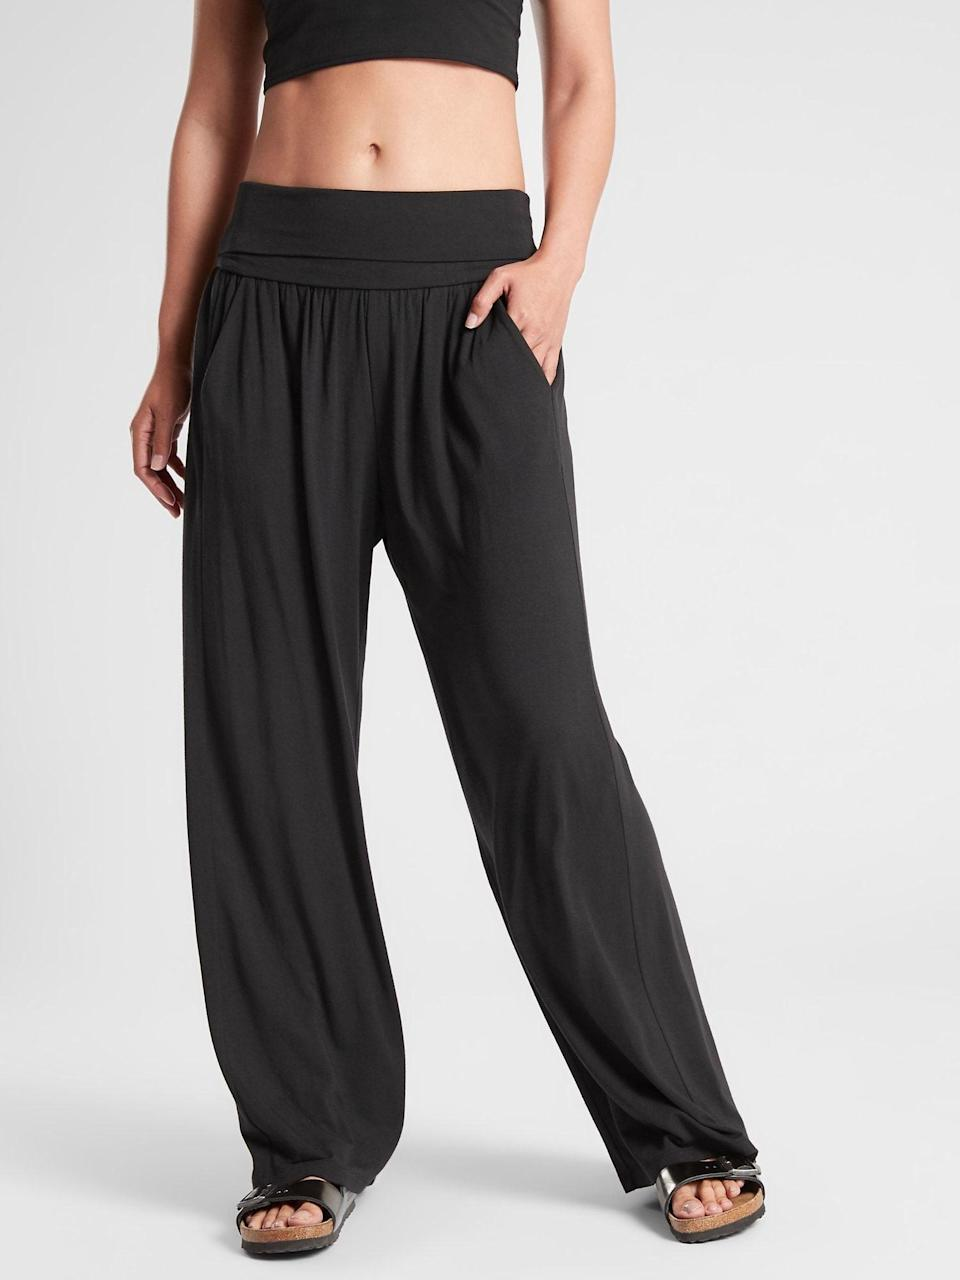 <p>New moms don't often get to pamper themselves, but these supersoft <span>Athleta Studio Wide Leg Pants</span> ($79) are lux and stretchy at the same time, taking her from pregnancy to postpartum with a bit of comfort.</p>